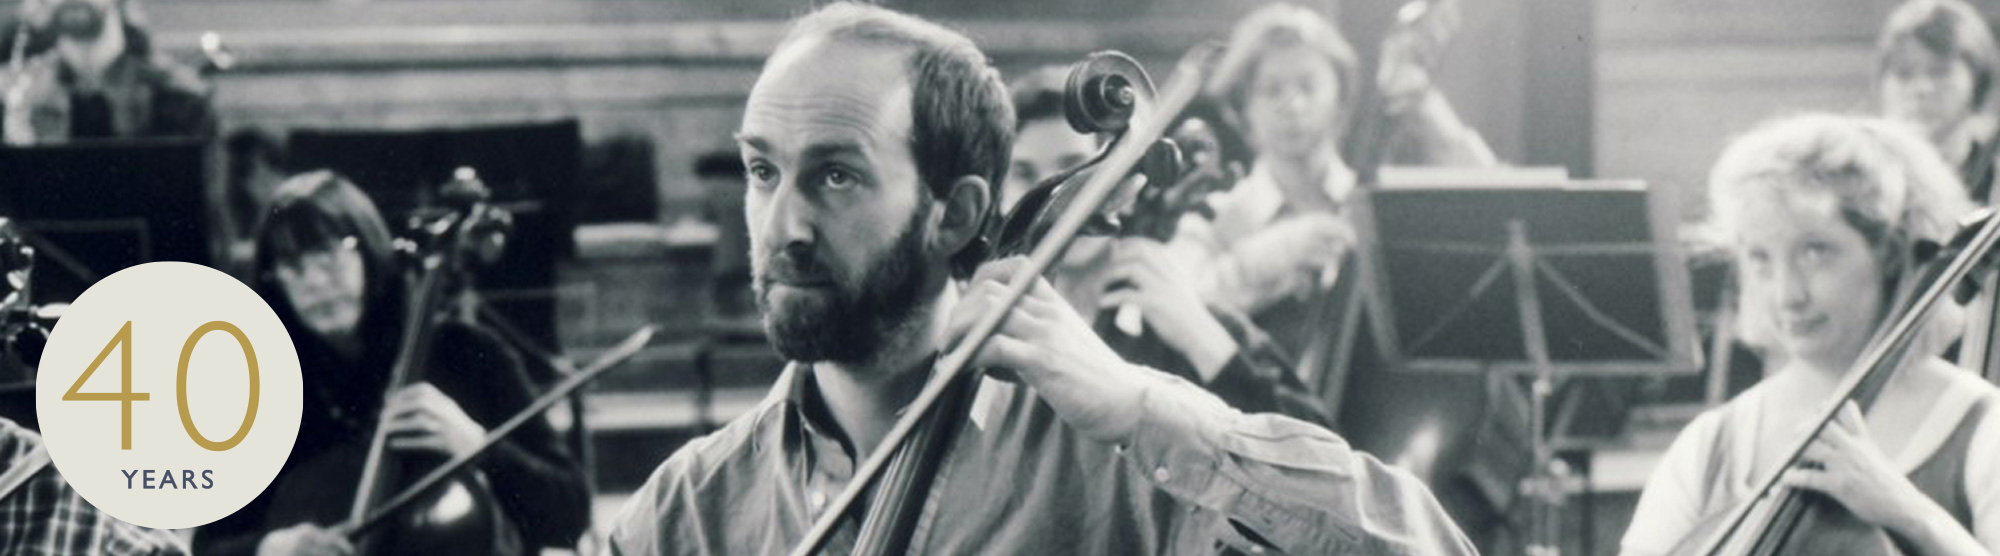 historical image of cellist in orchestra